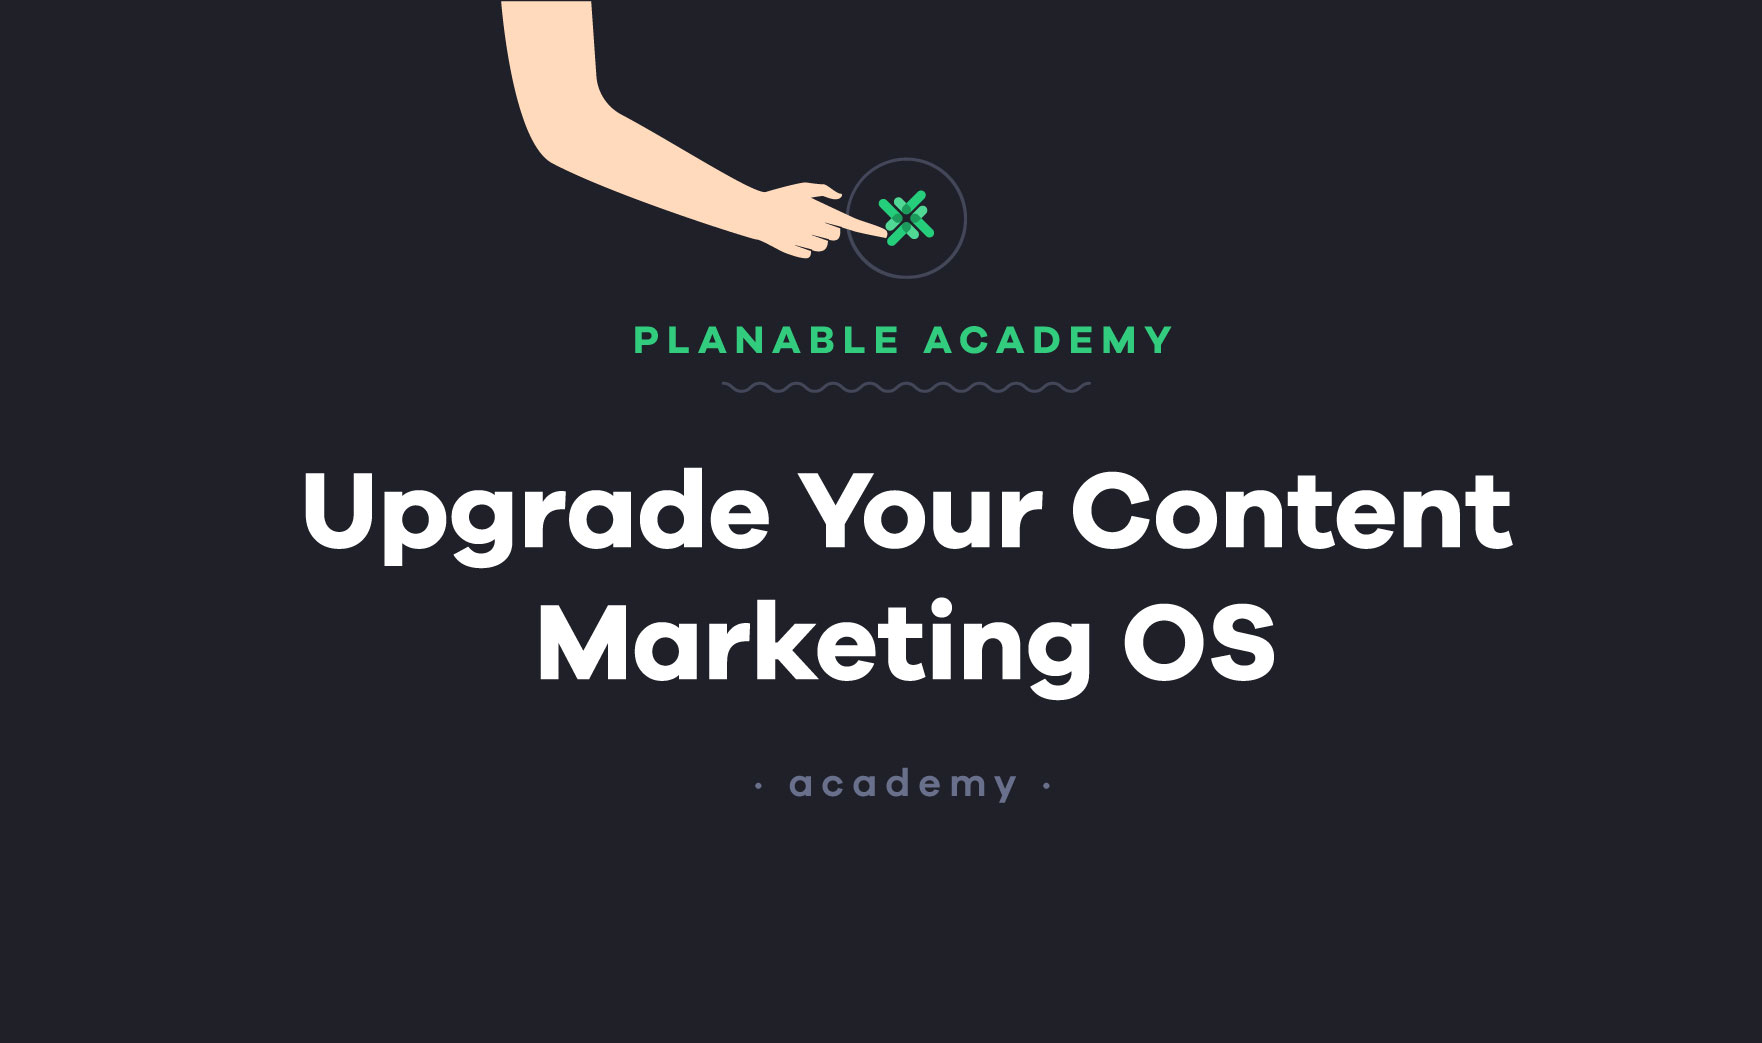 https://planable.io/academy-content-marketing-os/